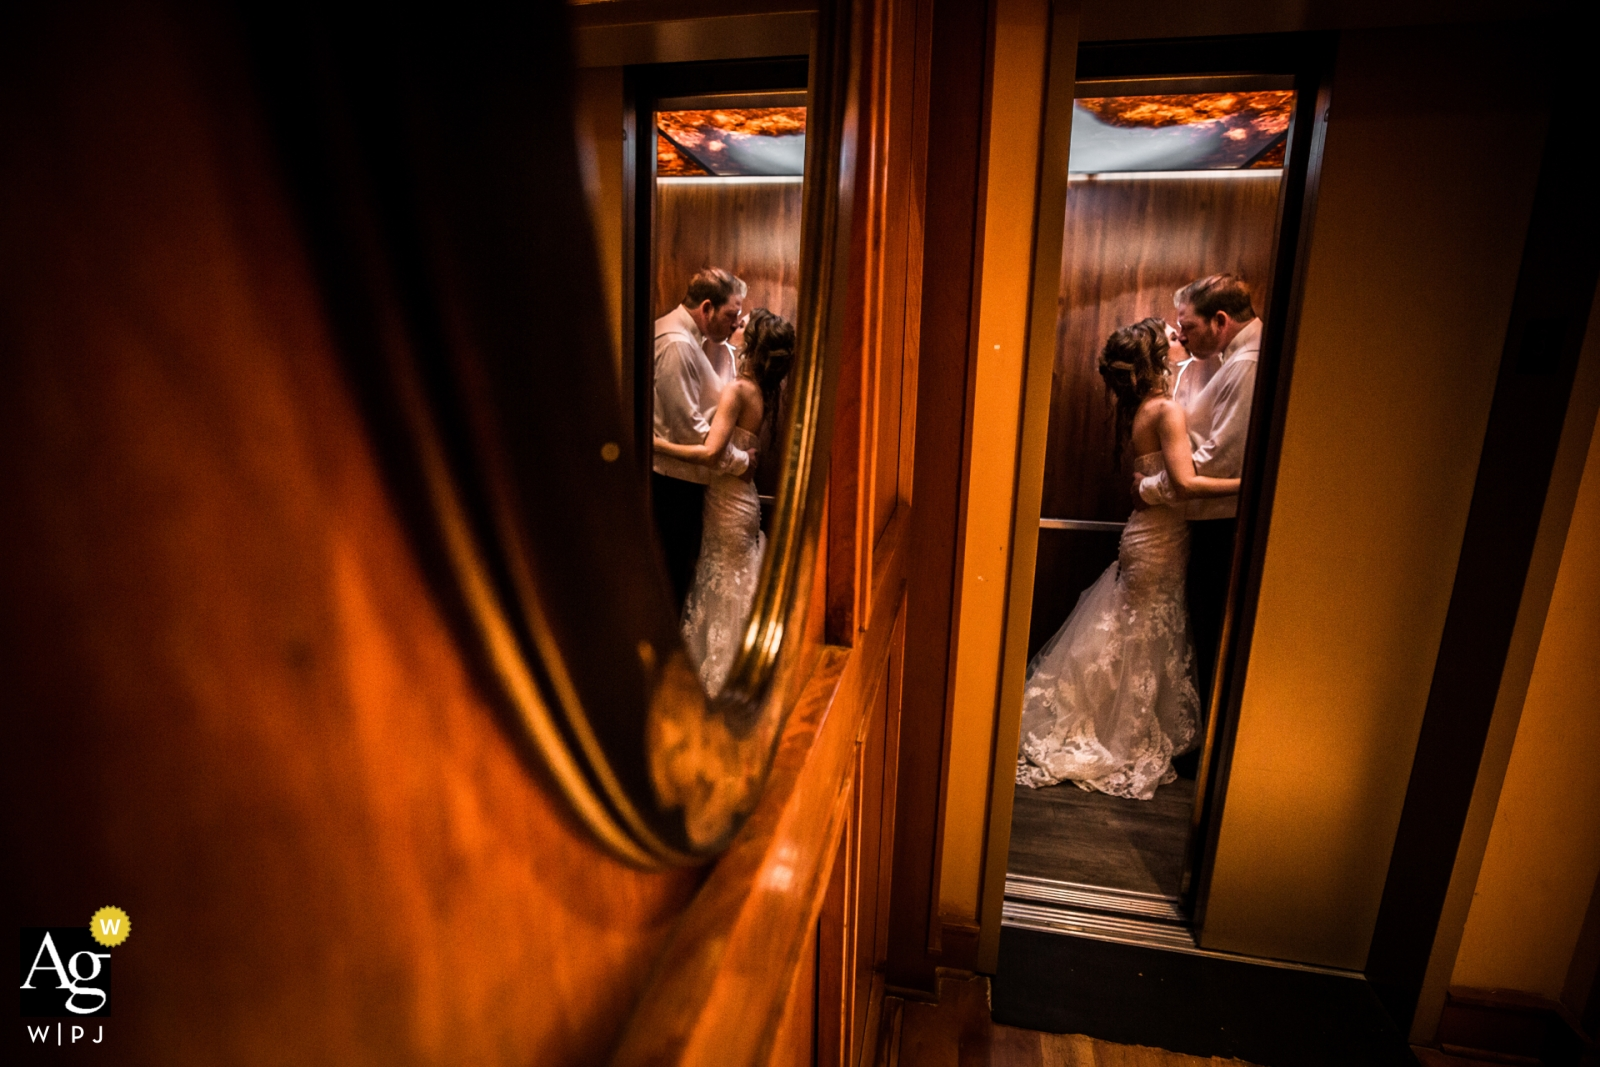 Wedding photograph Couple Love on an Elevator | Wedding day portaits captured in Minneapolis Minnepolis